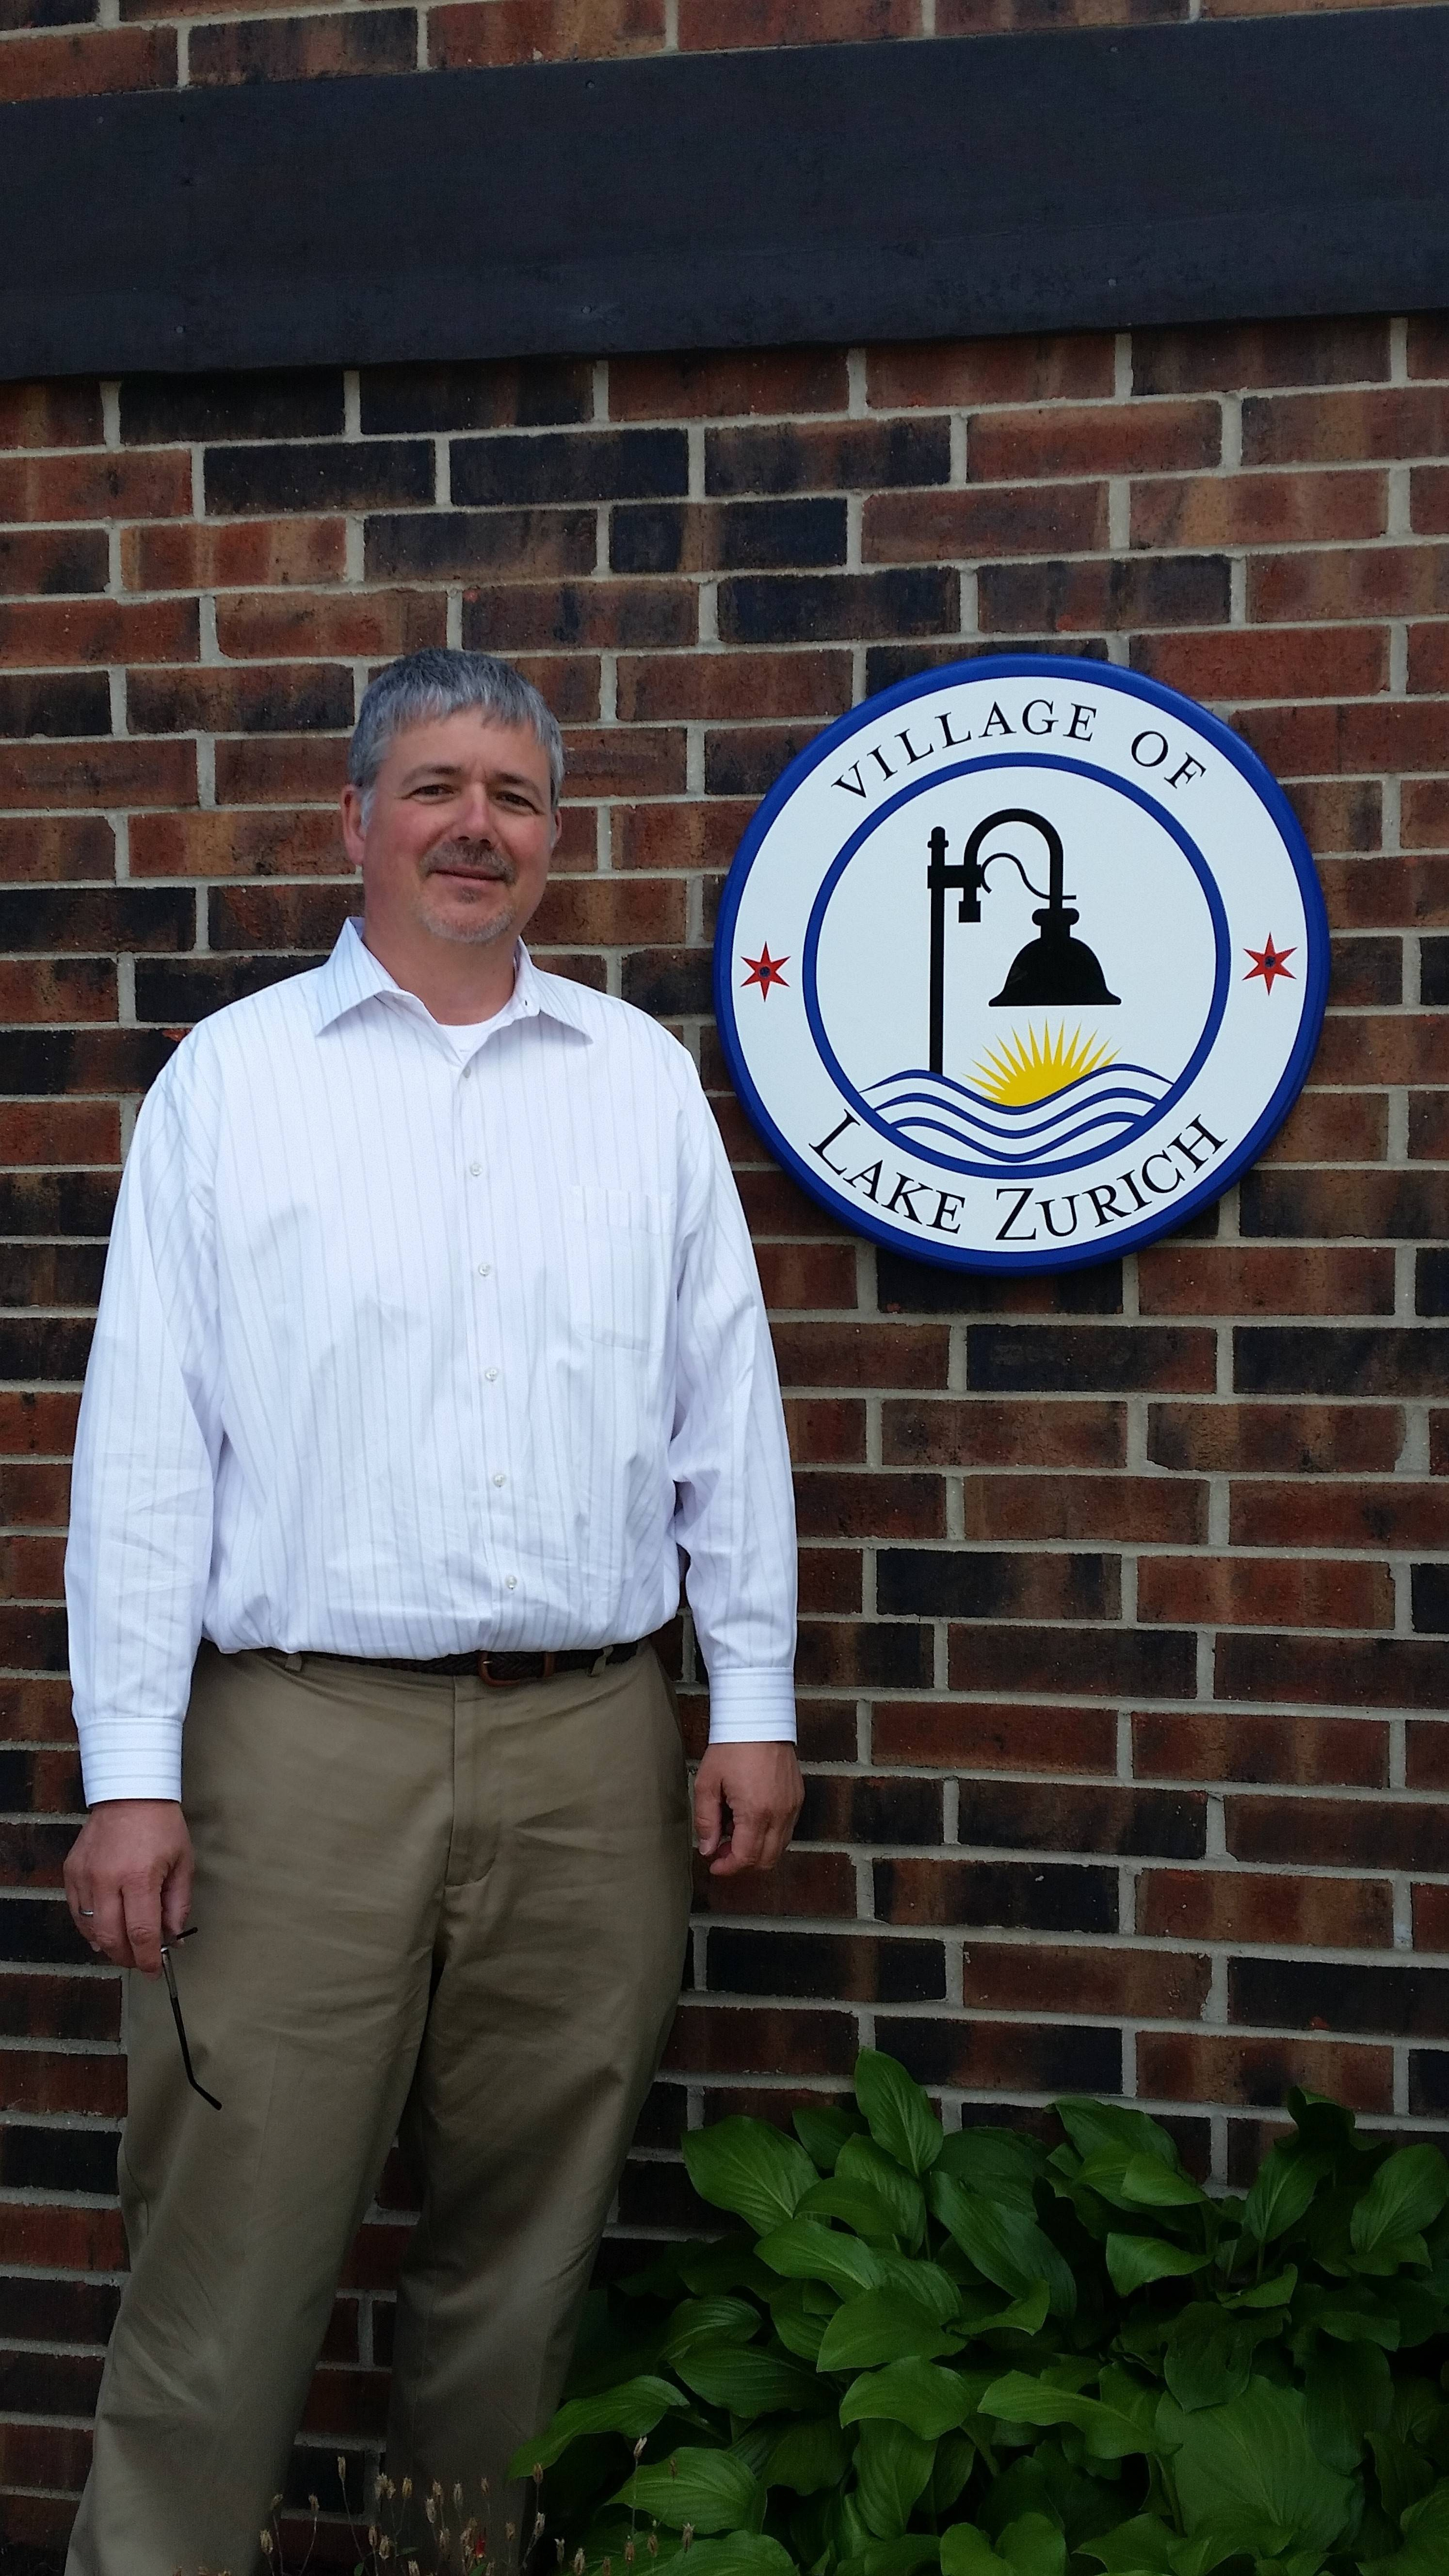 Michael Duebner has shifted into a new role as Lake Zurich's innovation director. He had been technology director until the village board approved the move to the innovation post Monday.